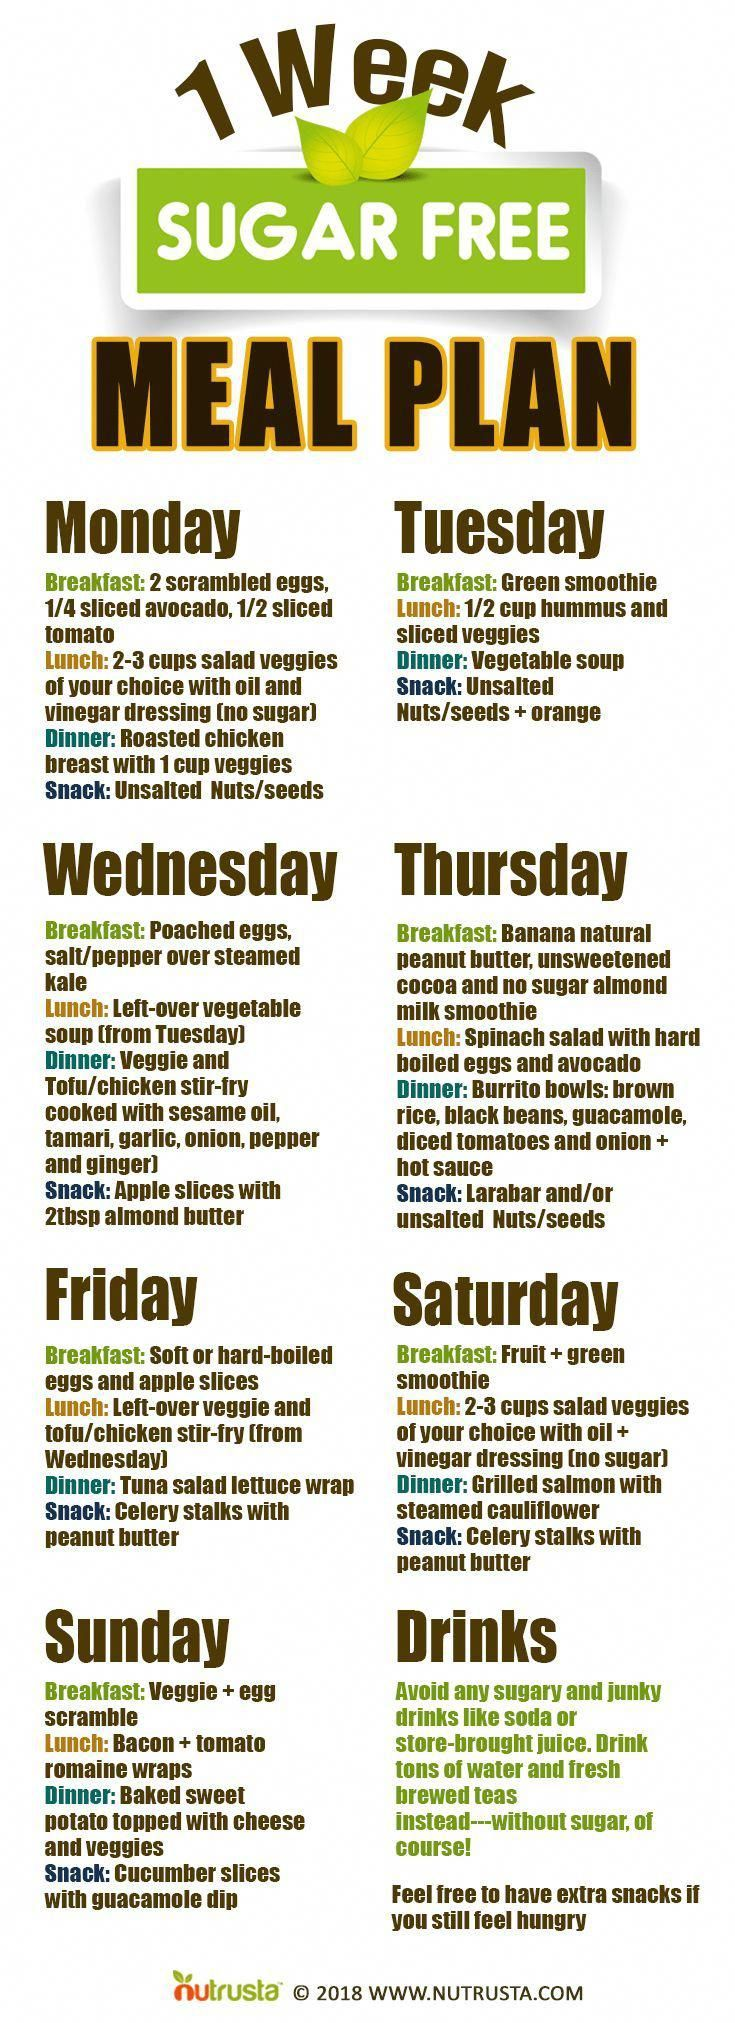 A SugarFree 1Week Meal Plan that doesnt have to be boring if you are suff